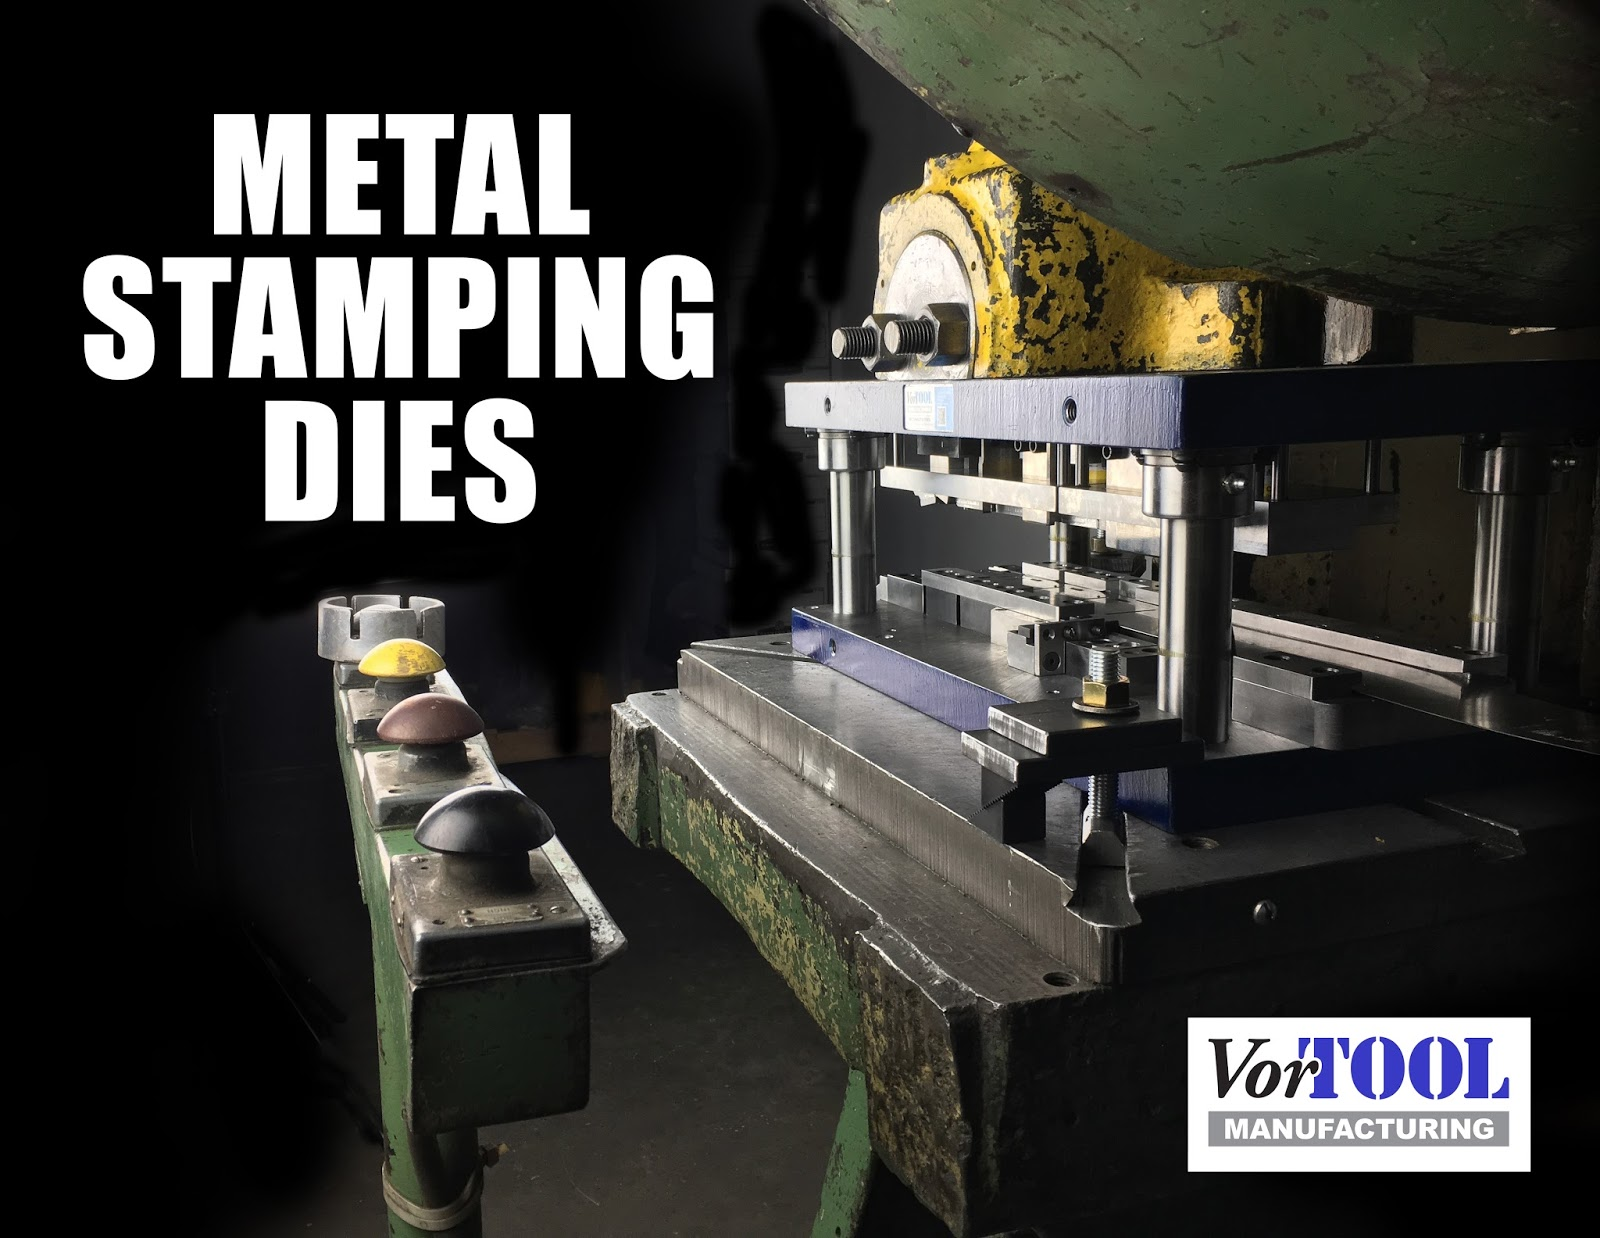 Vortool Manufacturing Ltd Metal Stamping Processes Use Dies And Punches